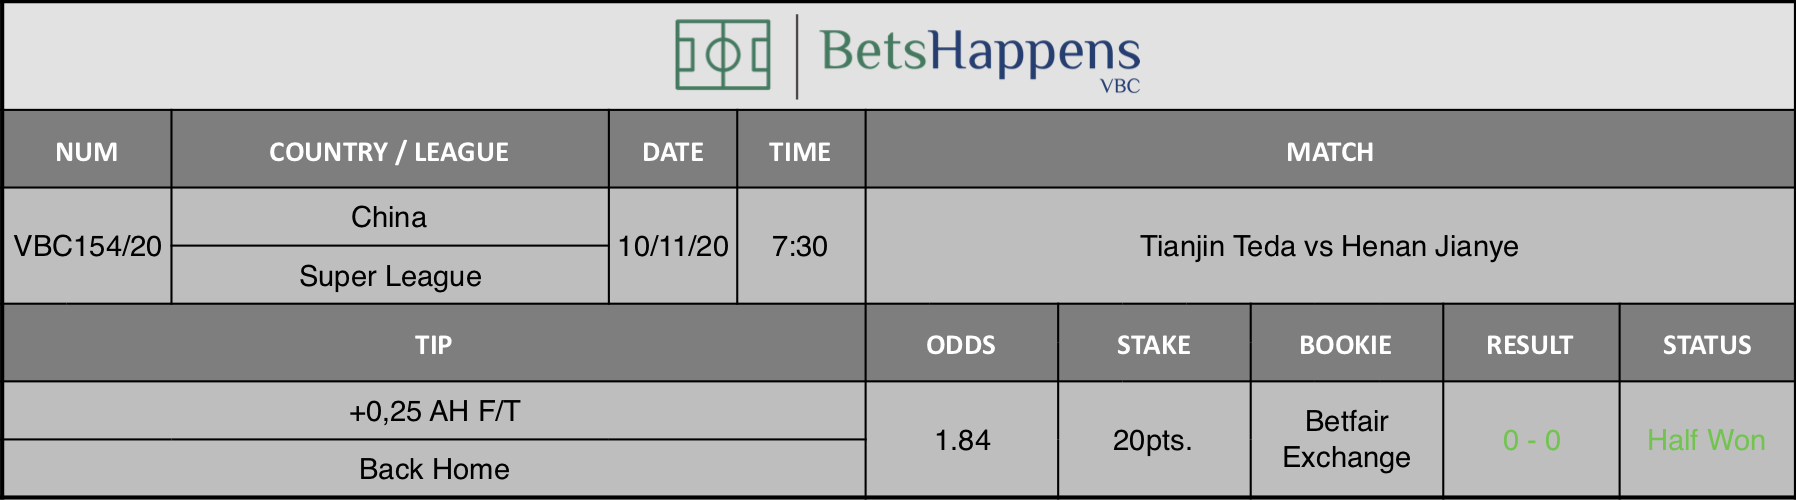 Results of our tip for the Tianjin Teda vs Henan Jianye match where +0,25 AH F/T Back Home is recommended.